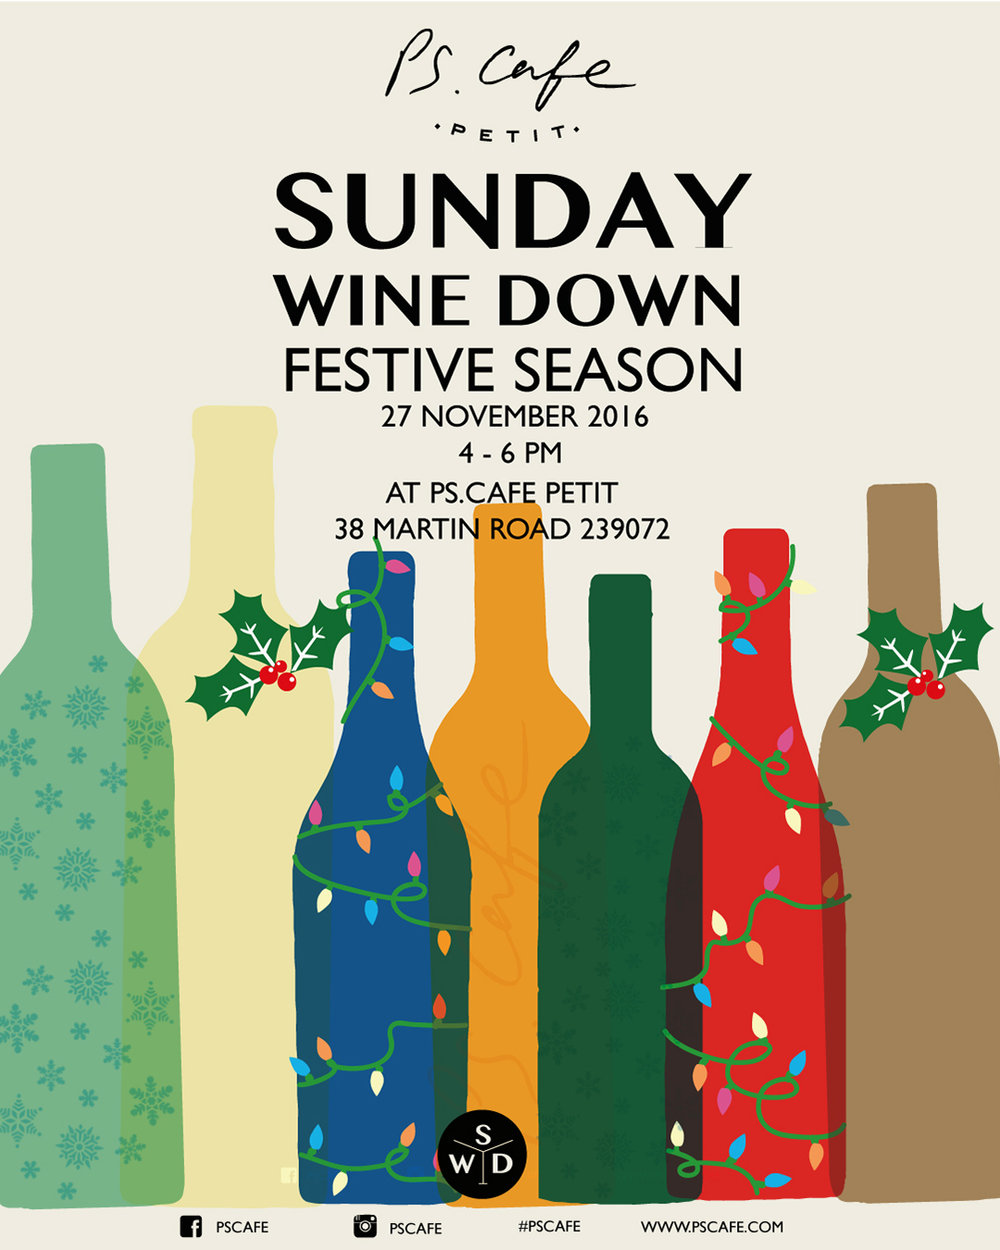 The most wonderful time of the year. Whether you're looking for wines to match, to festive fare, gift ideas or a coping mechanism, we've got you covered. Sunday Wine Down is our end-of-the-month friendly walkabout wine tasting with fantastic discounts on purchases of six or twelve bottles. Share in our passion for fine wine. Event Page here!